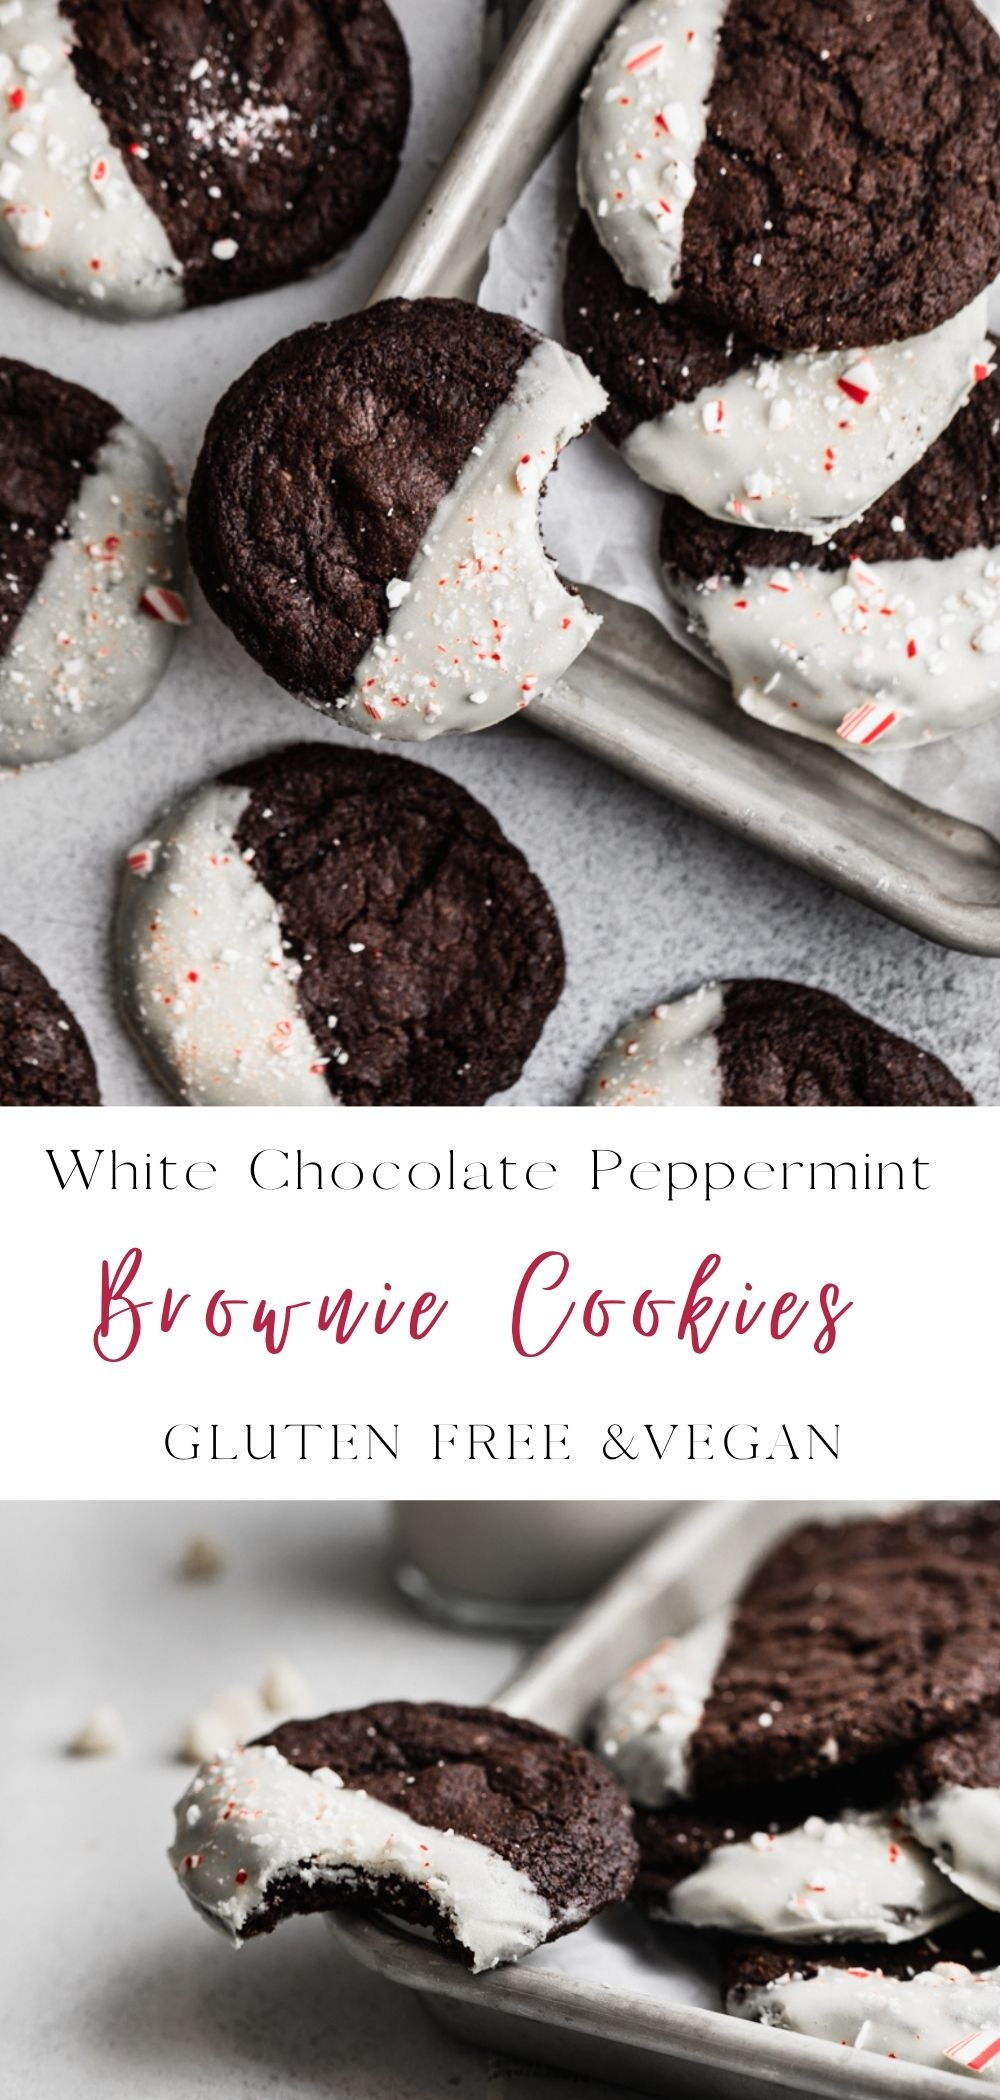 White chocolate peppermint cookie recipes. Easy to make dark chocolate brownie cookies white chocolate dipped and topped with candy cane piececs. This gluten free chocolate cookie is a perfect addition to your cookie box. Also made vegan! #cookierecipes #cookies #vegeandesserts veganrecipes #peppermint #brownies #glutenfreerecipes #glutenfreedesserts #glutenfreebaking